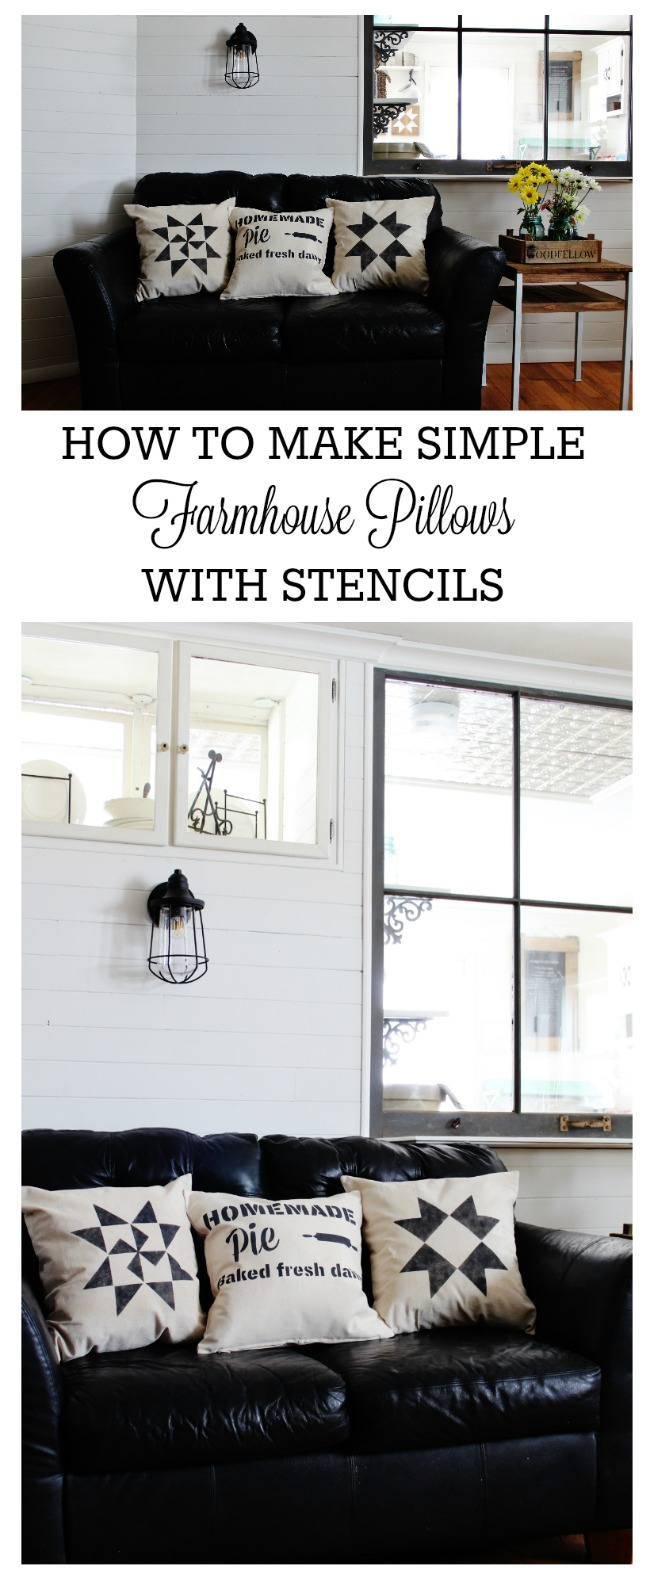 How to Make Simple Farmhouse Painted Decorative Throw Pillows in about 10 minutes with Vintage Sign Stencils | www.knickoftime.net